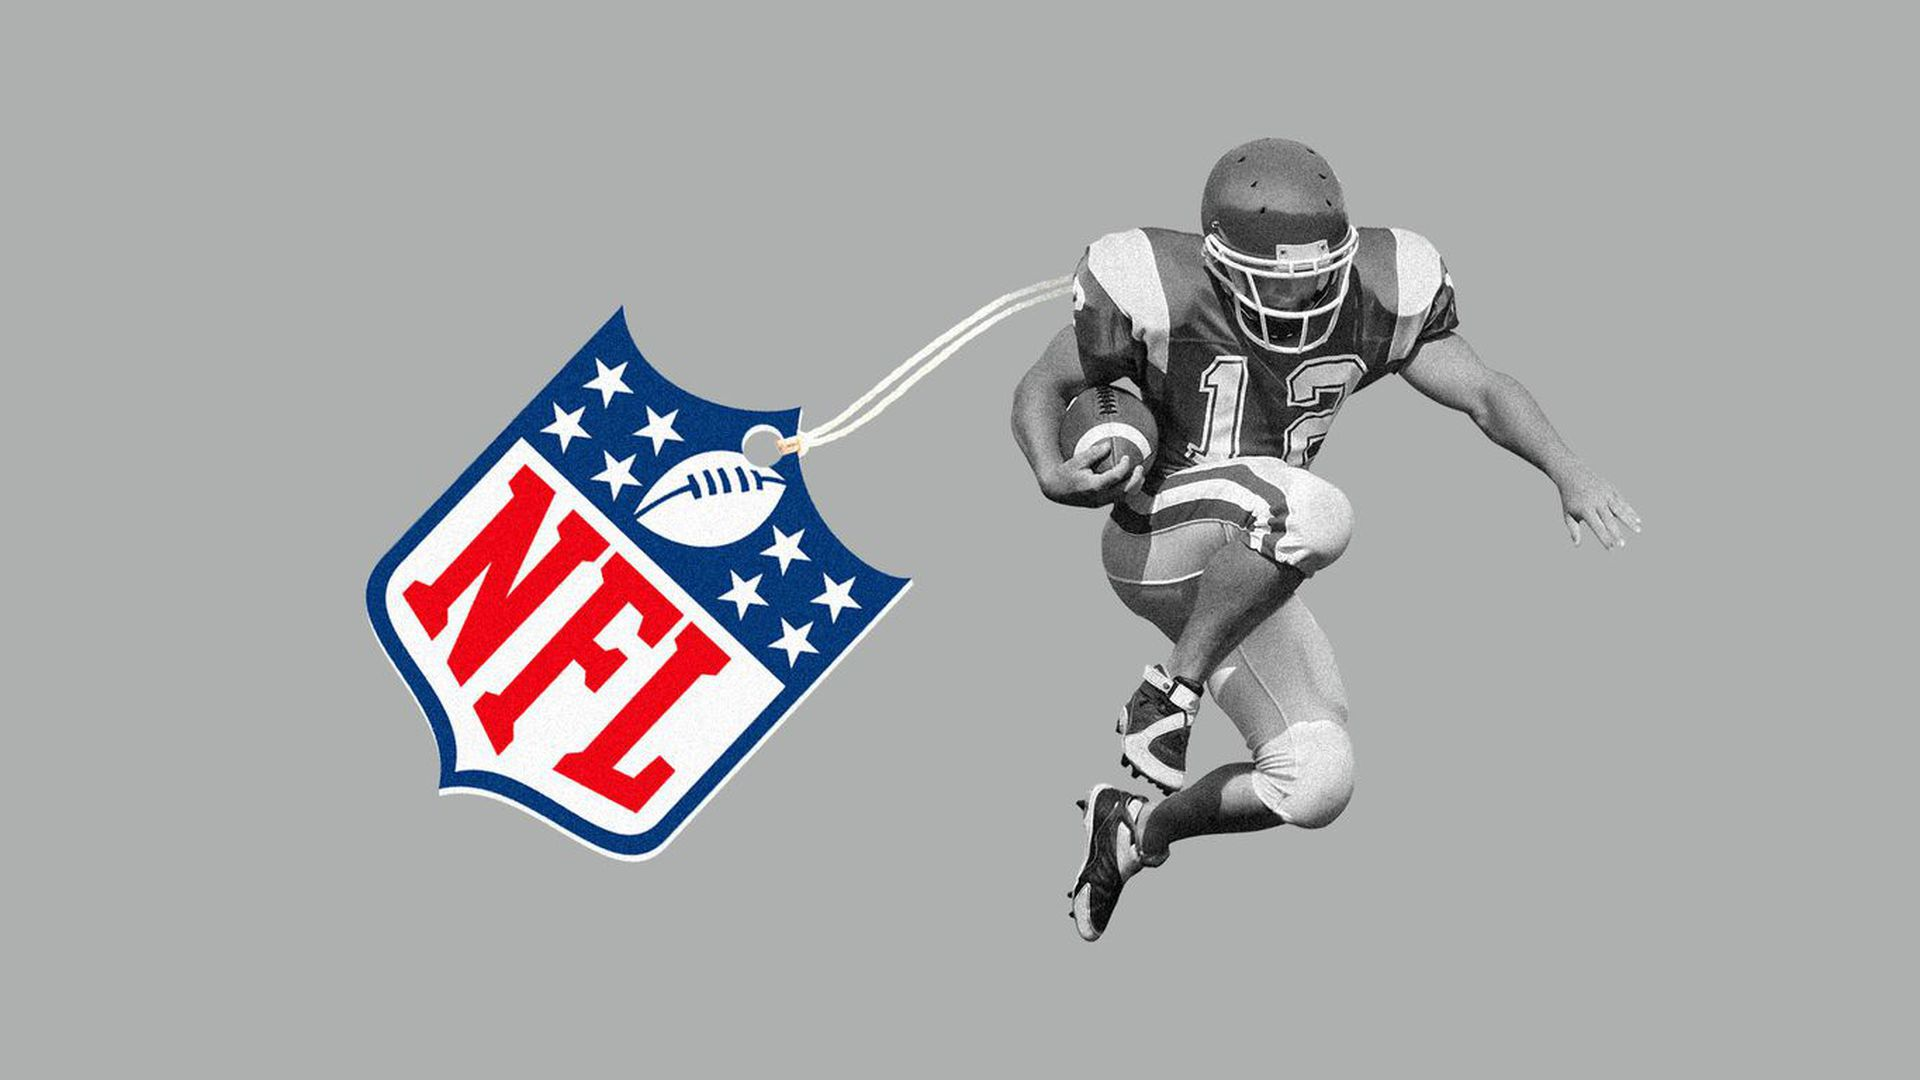 Illustration of a football player with an NFL tag